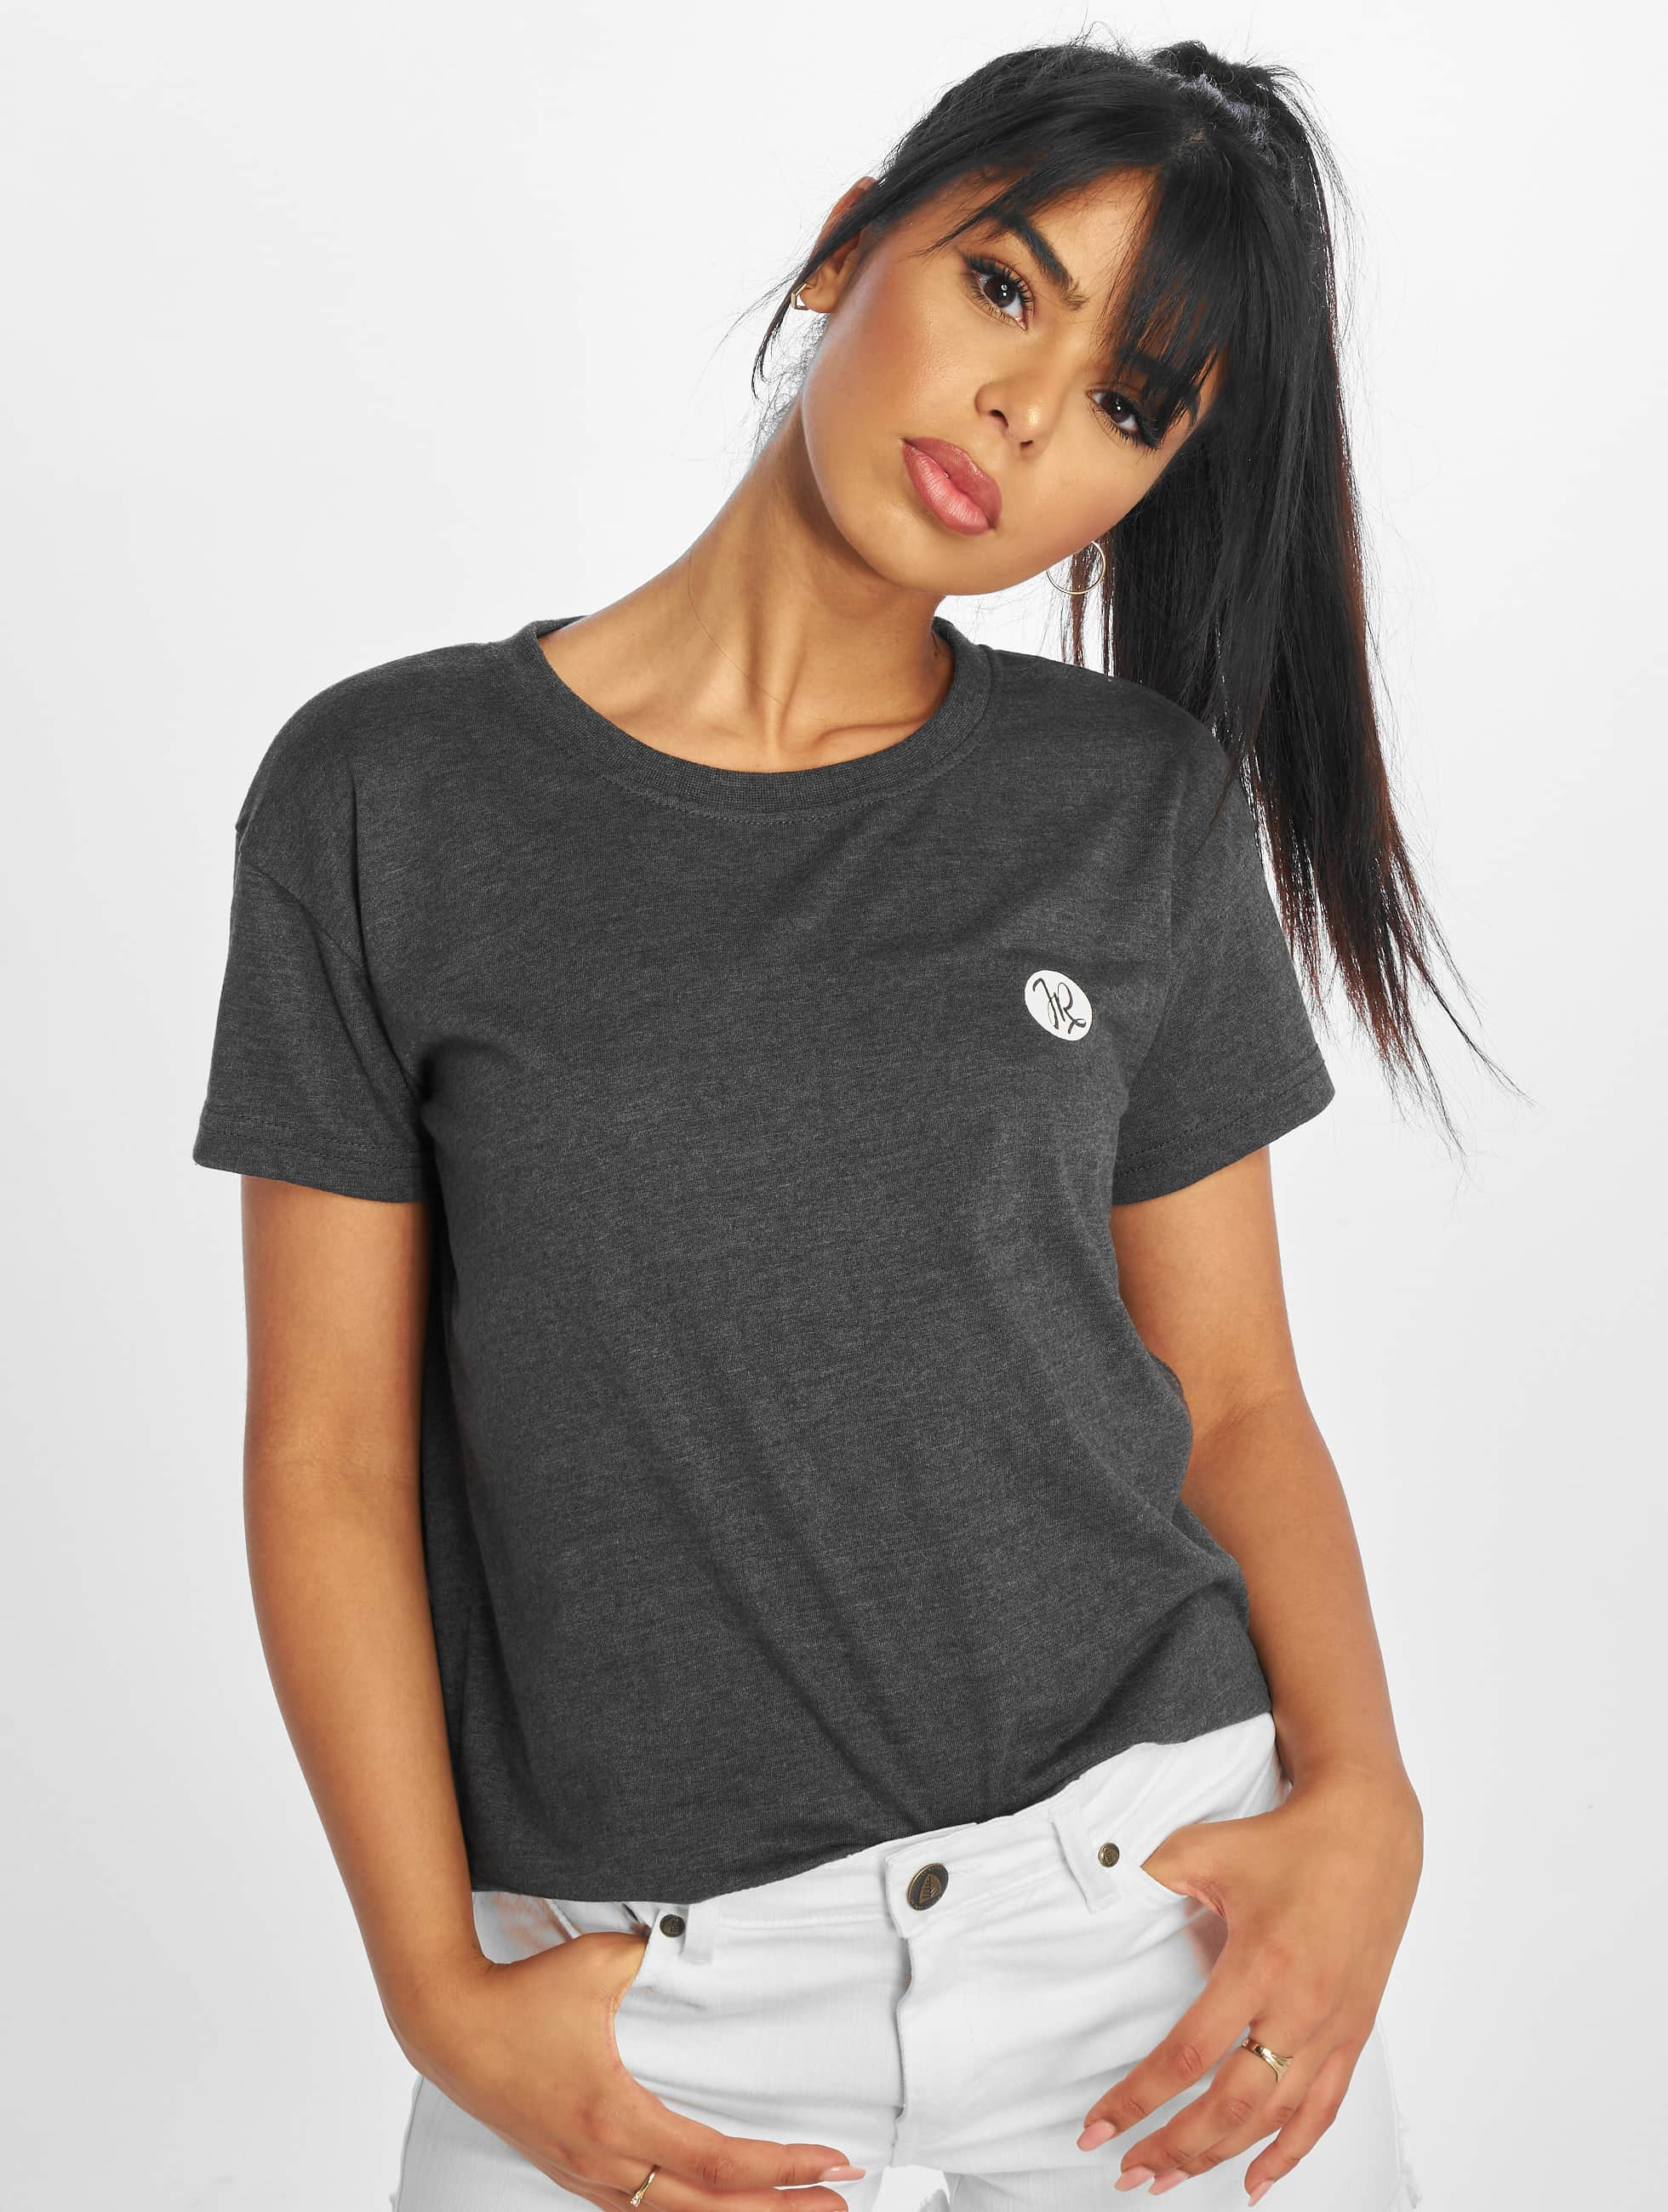 Just Rhyse / T-Shirt Beverly Hills in grey XS